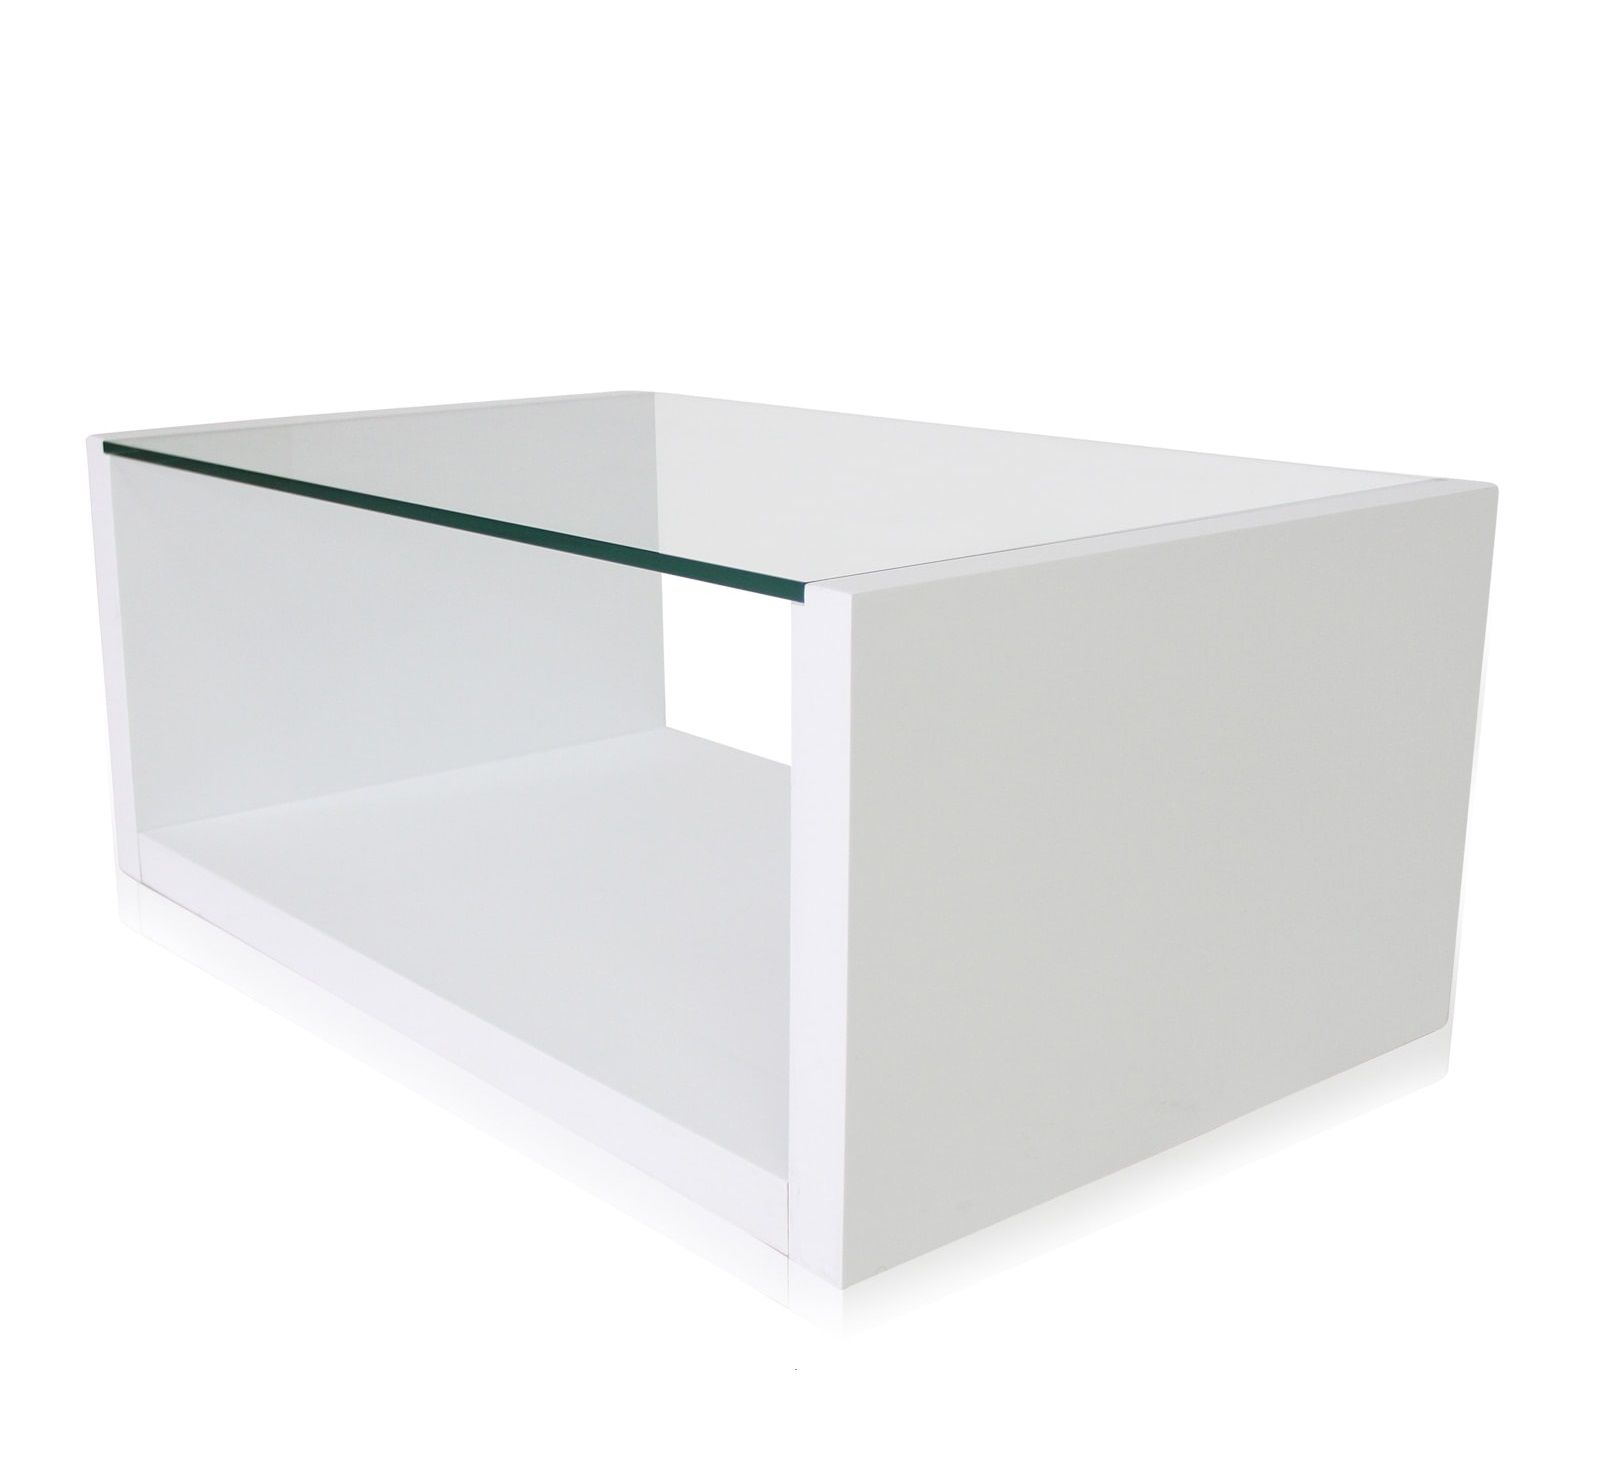 Surprising Flavia Modern Coffee Table White House Ideas Glass Top Short Links Chair Design For Home Short Linksinfo